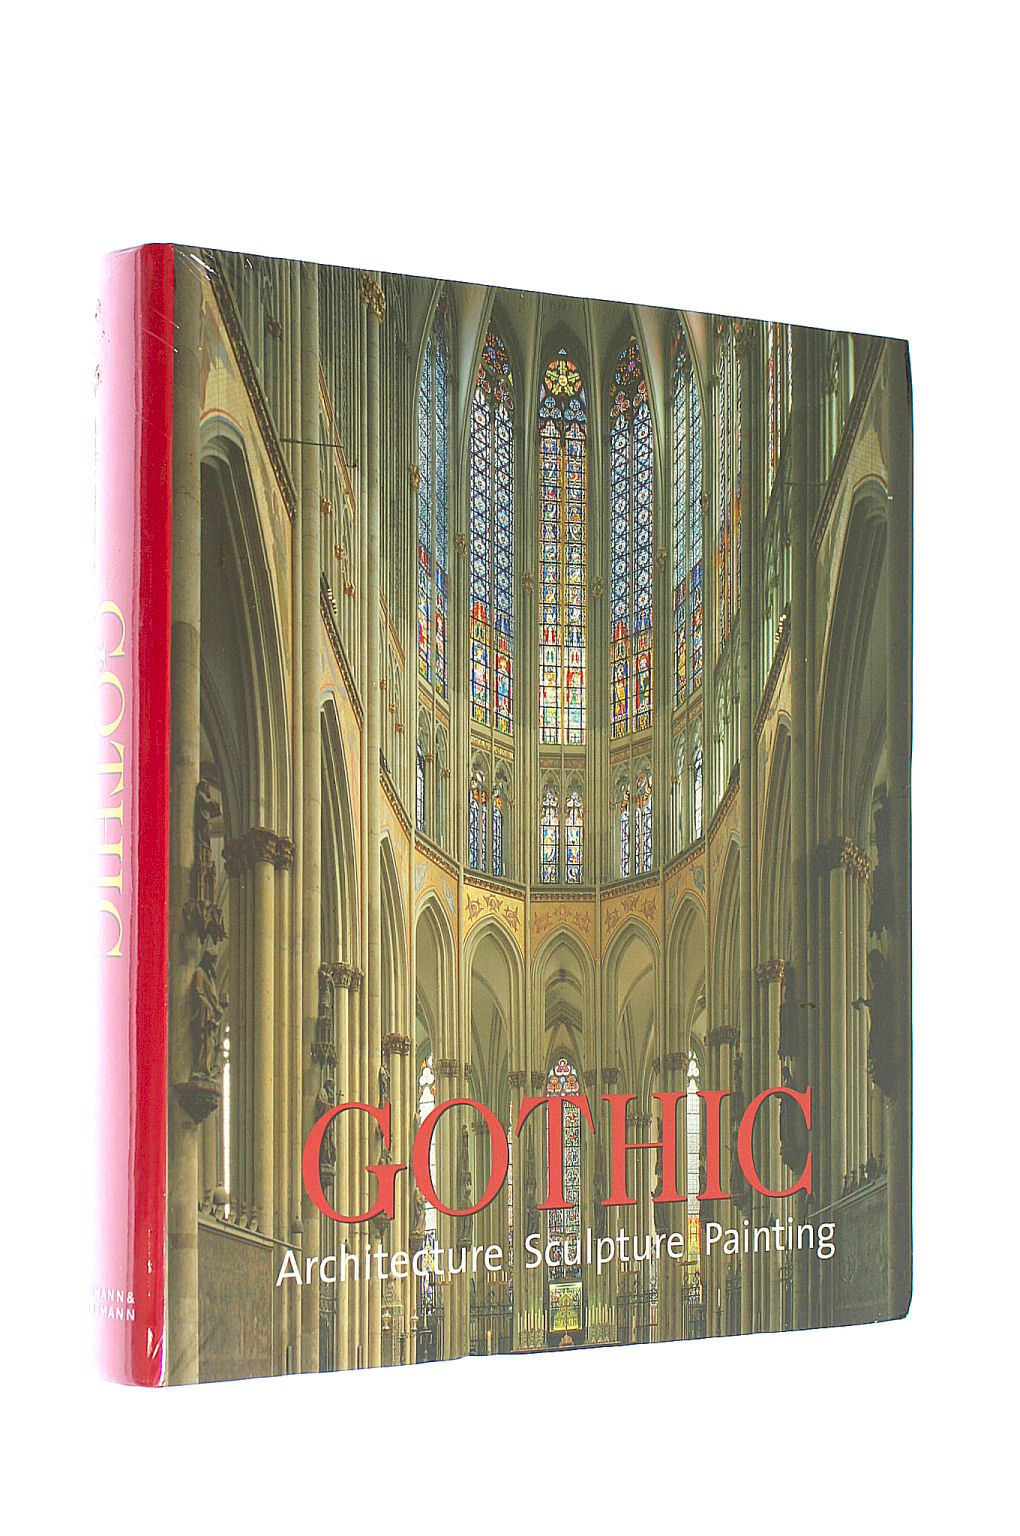 Image for Gothic: Architecture, Sculpture, Painting